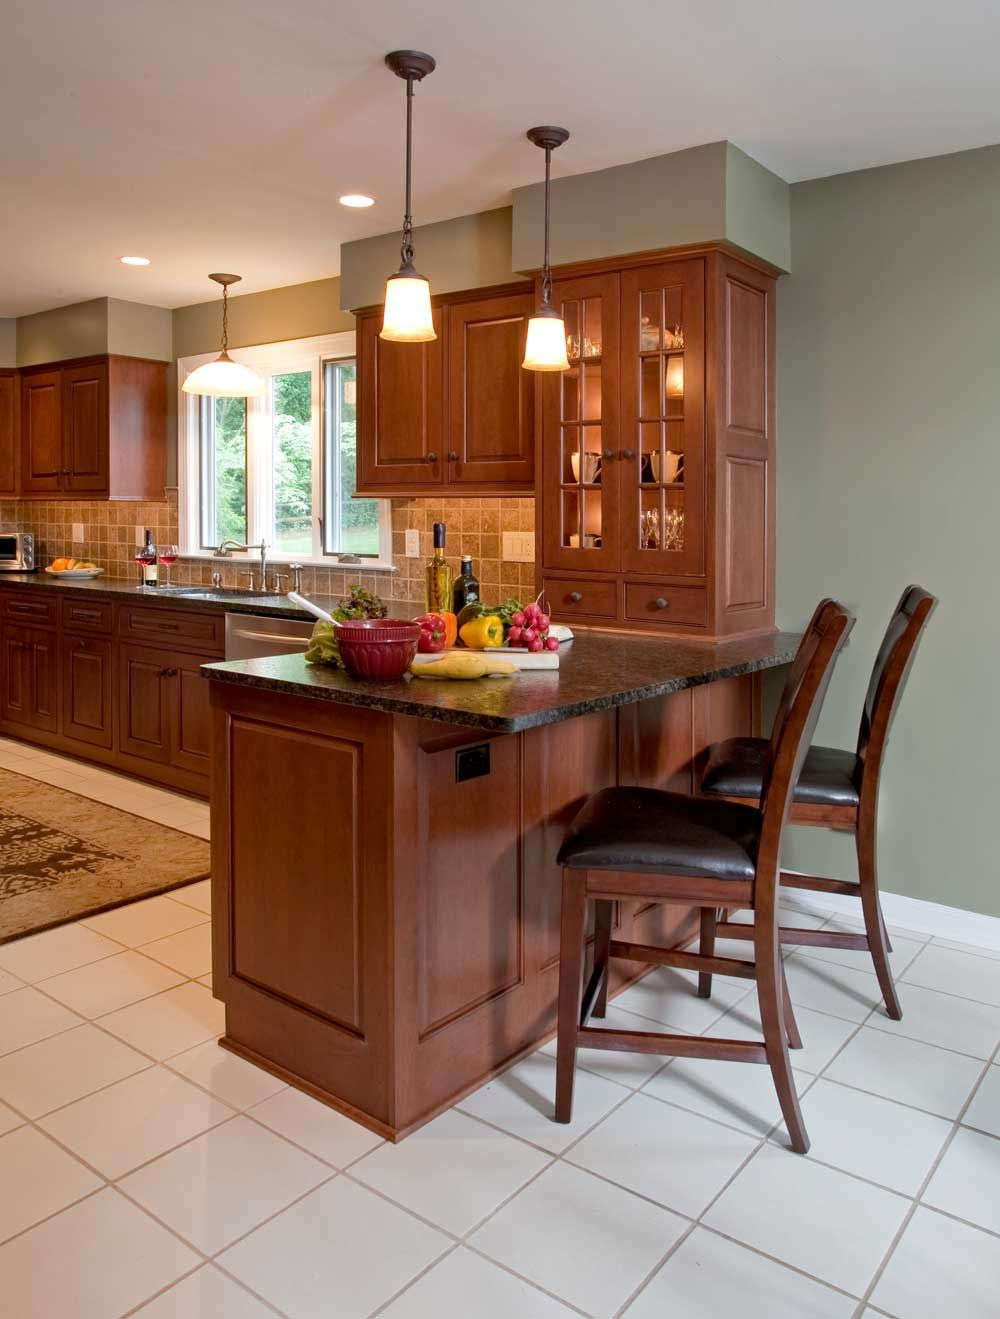 Transitional Kitchen Design. Simple & practical kitchen. | For the ...